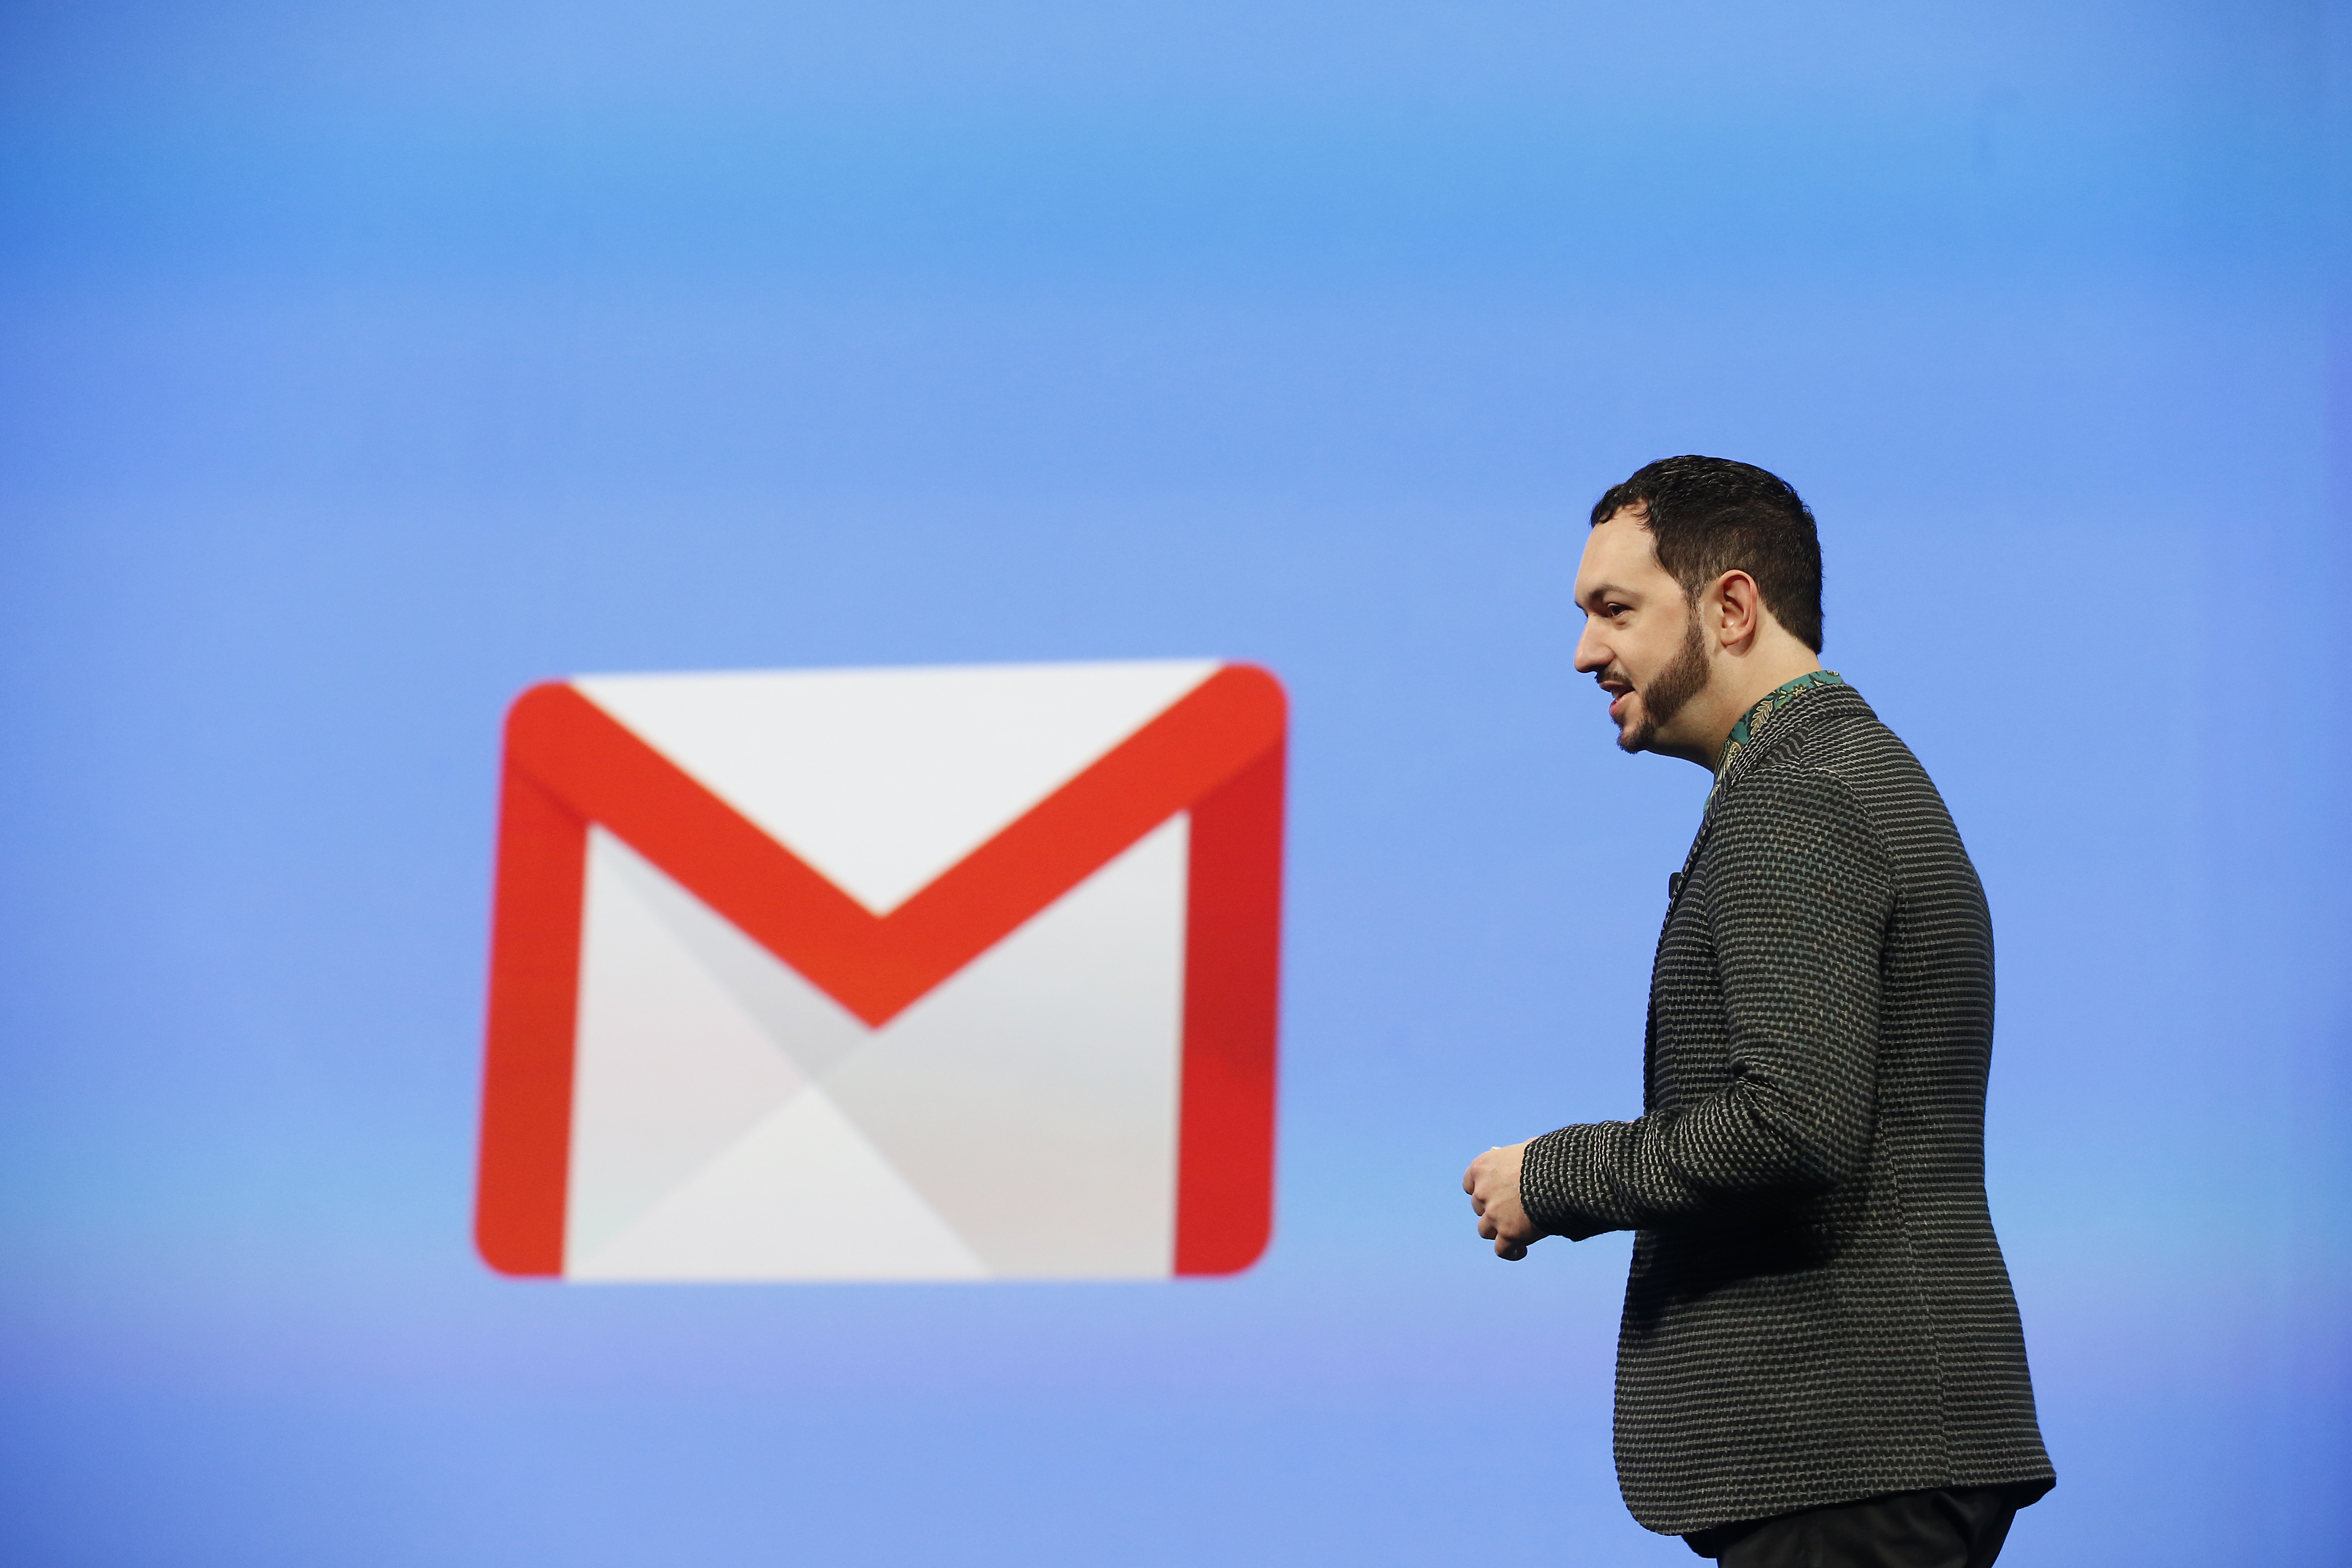 Matias Durante, Vice President, Design at Google, speaks on stage during the Google I/O Developers Conference at Moscone Center on June 25, 2014 in San Francisco, California.